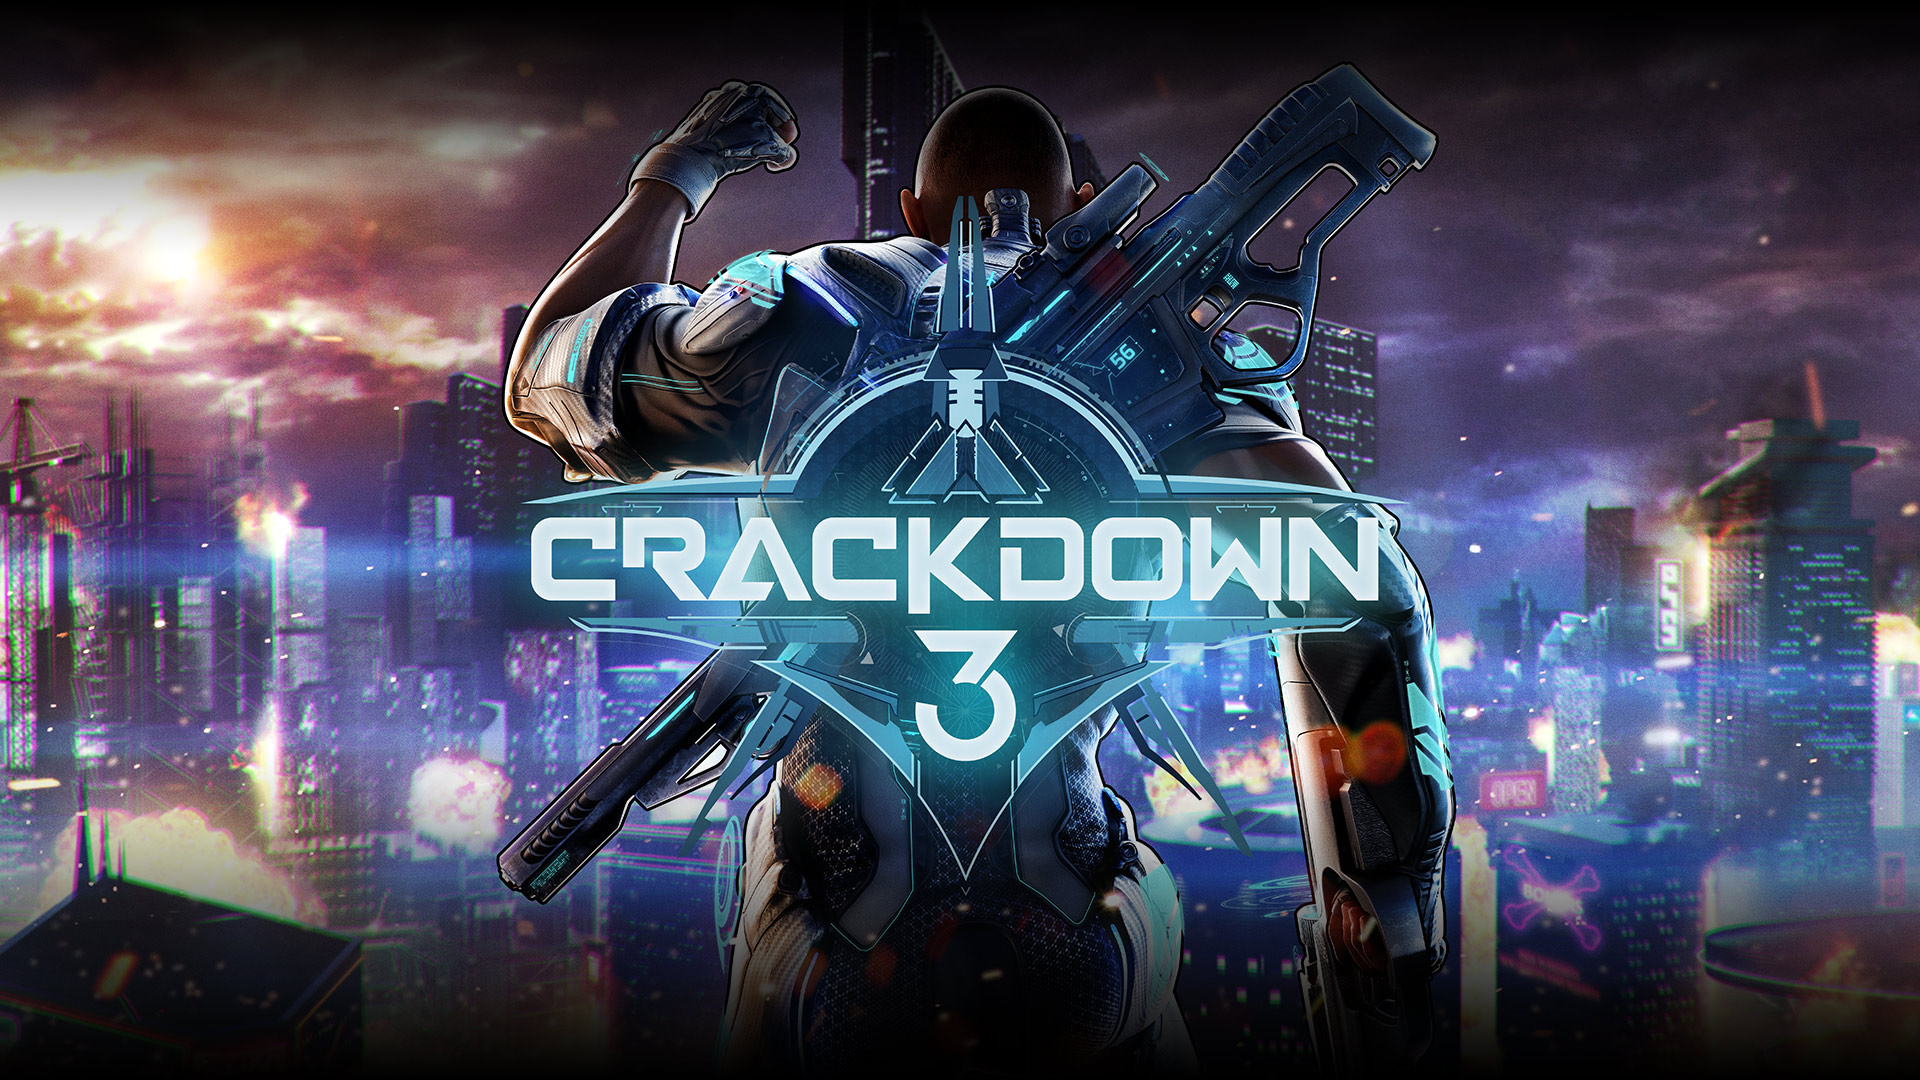 Crackdown 3 – Hero image, rear view of Commander Jaxon raising his fist over a city scene.